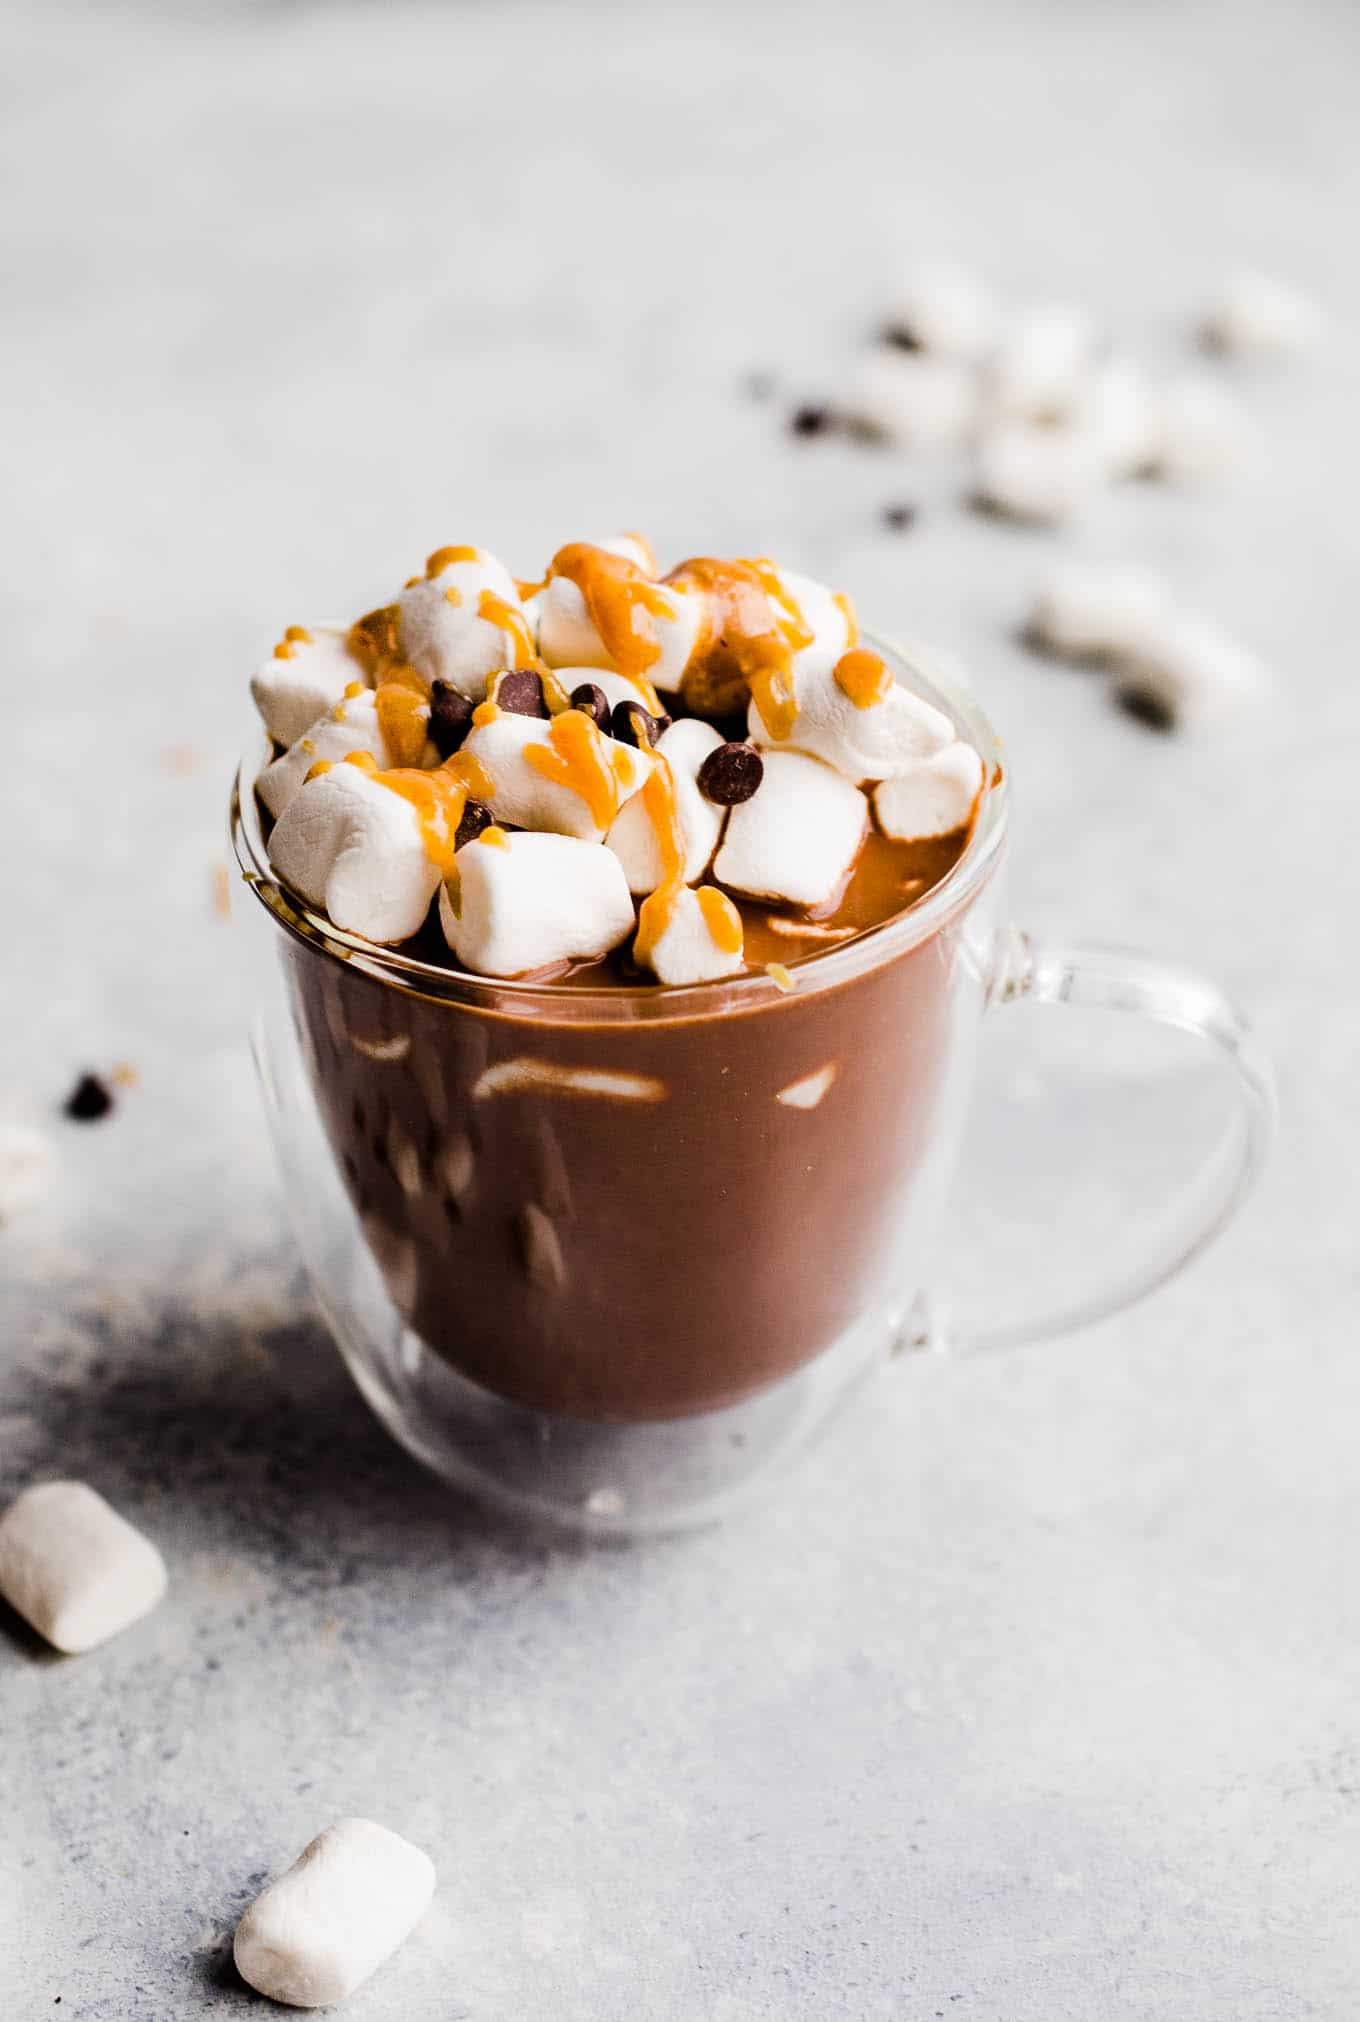 hot chocolate in glass mug with marshmallows and peanut butter sauce on top.